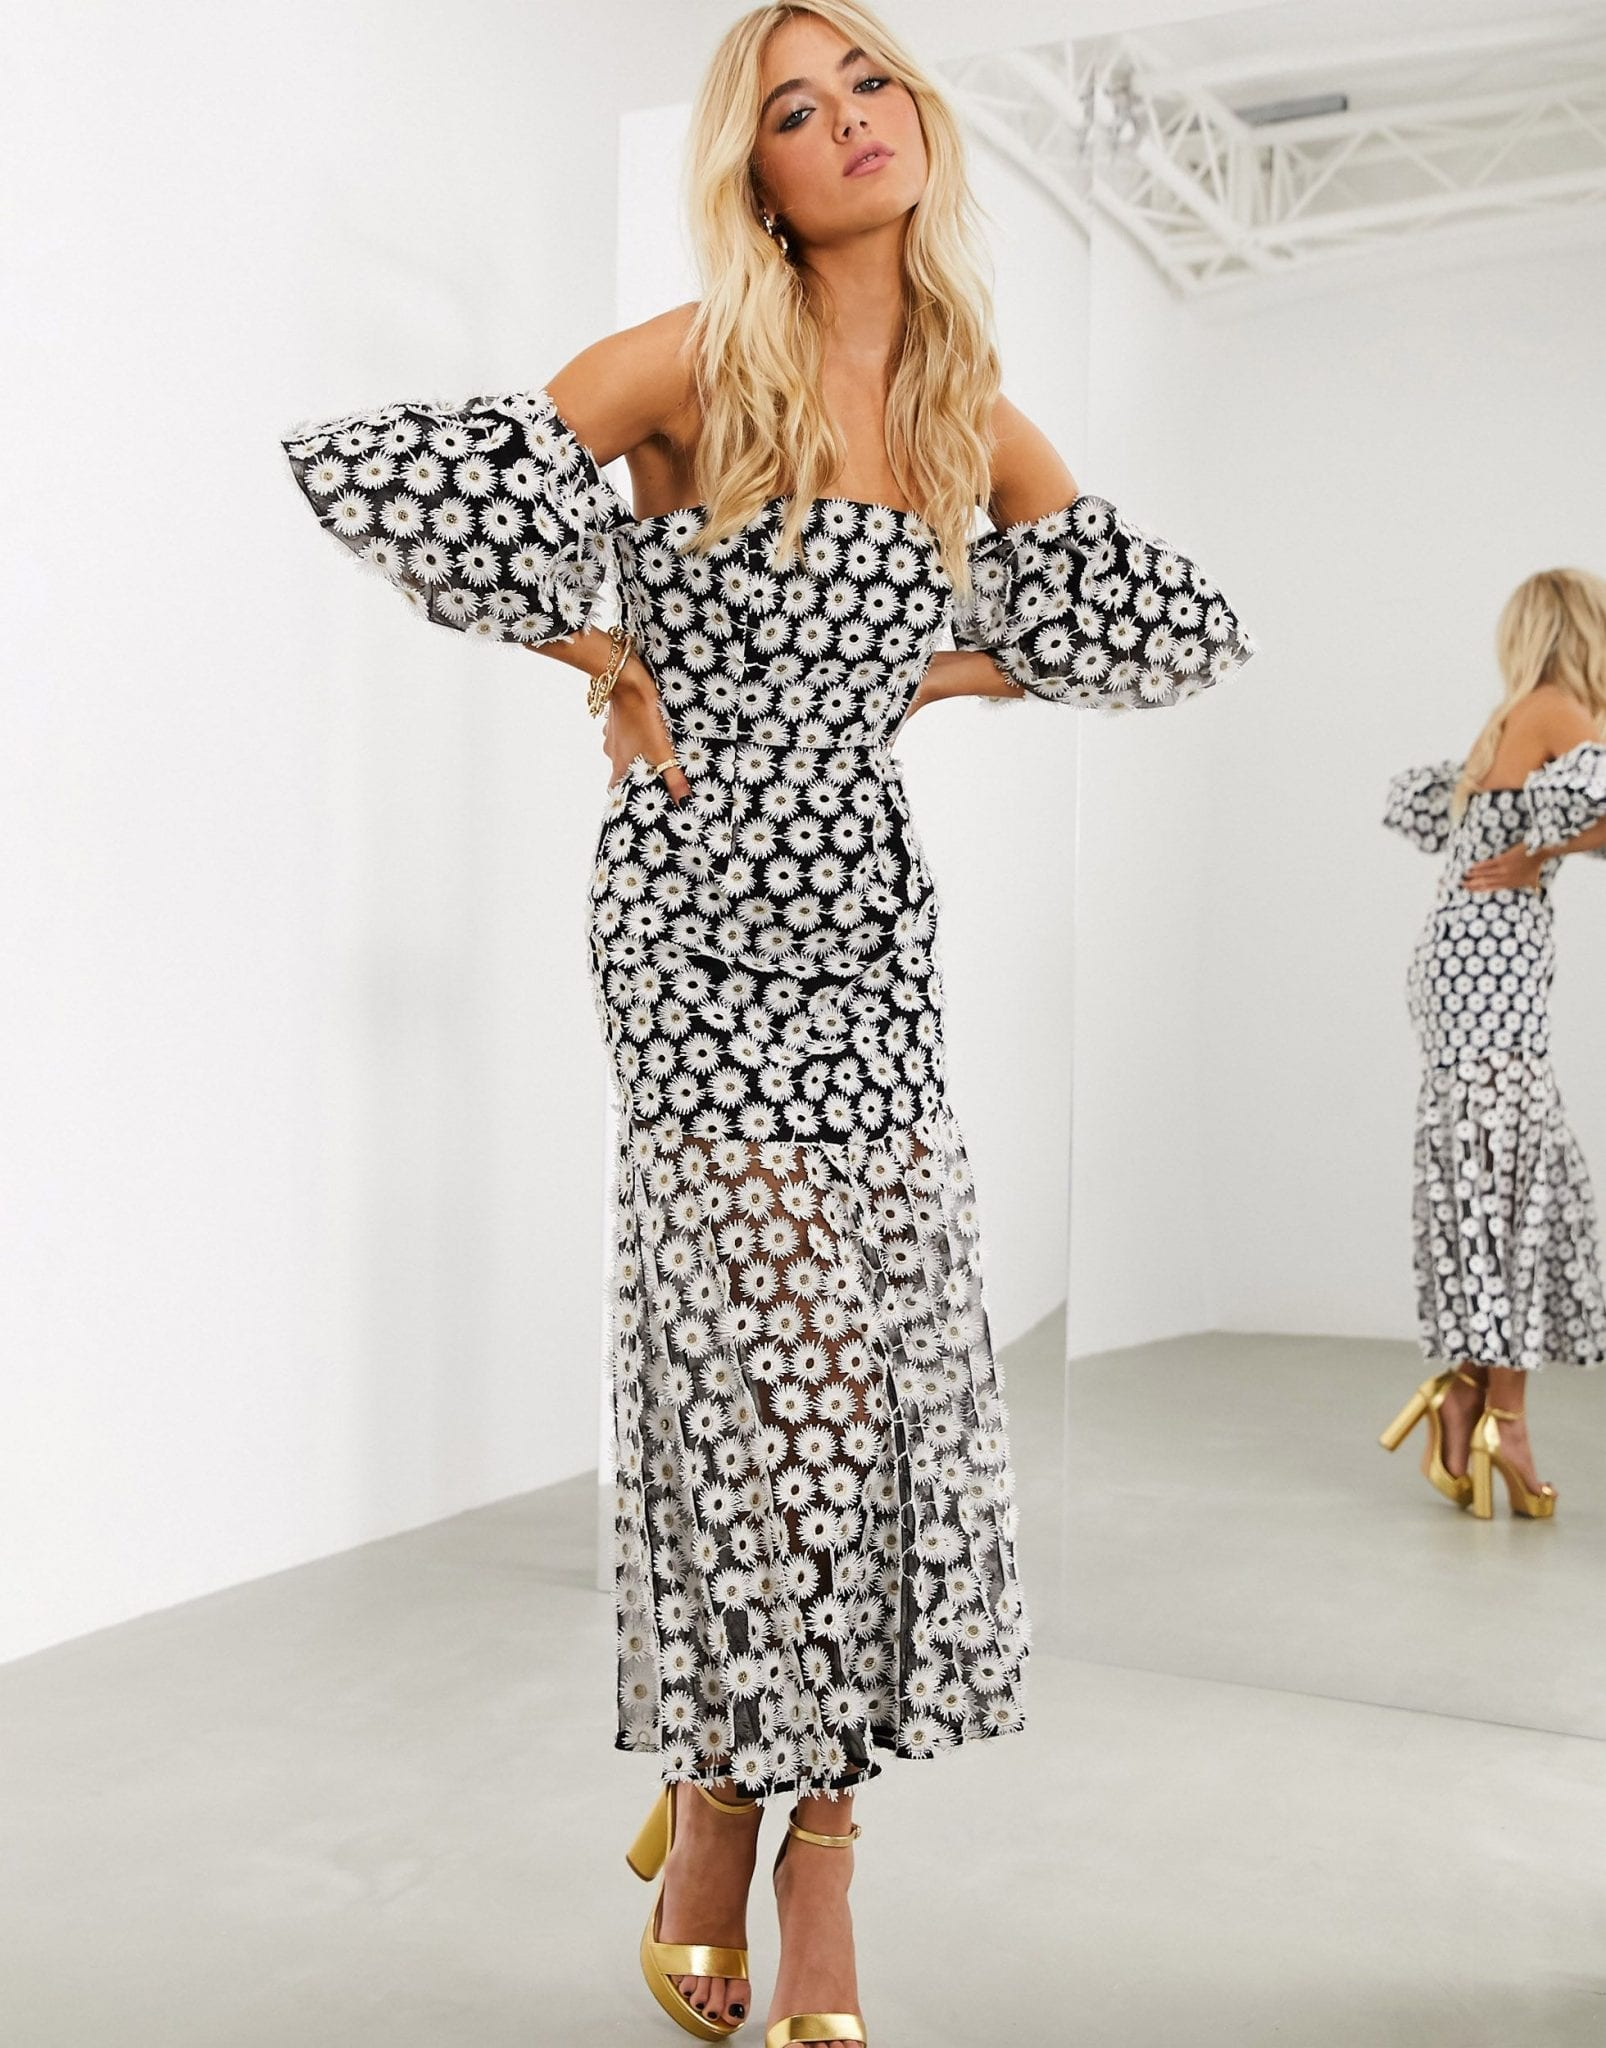 ASOS EDITION Off Shoulder Dress